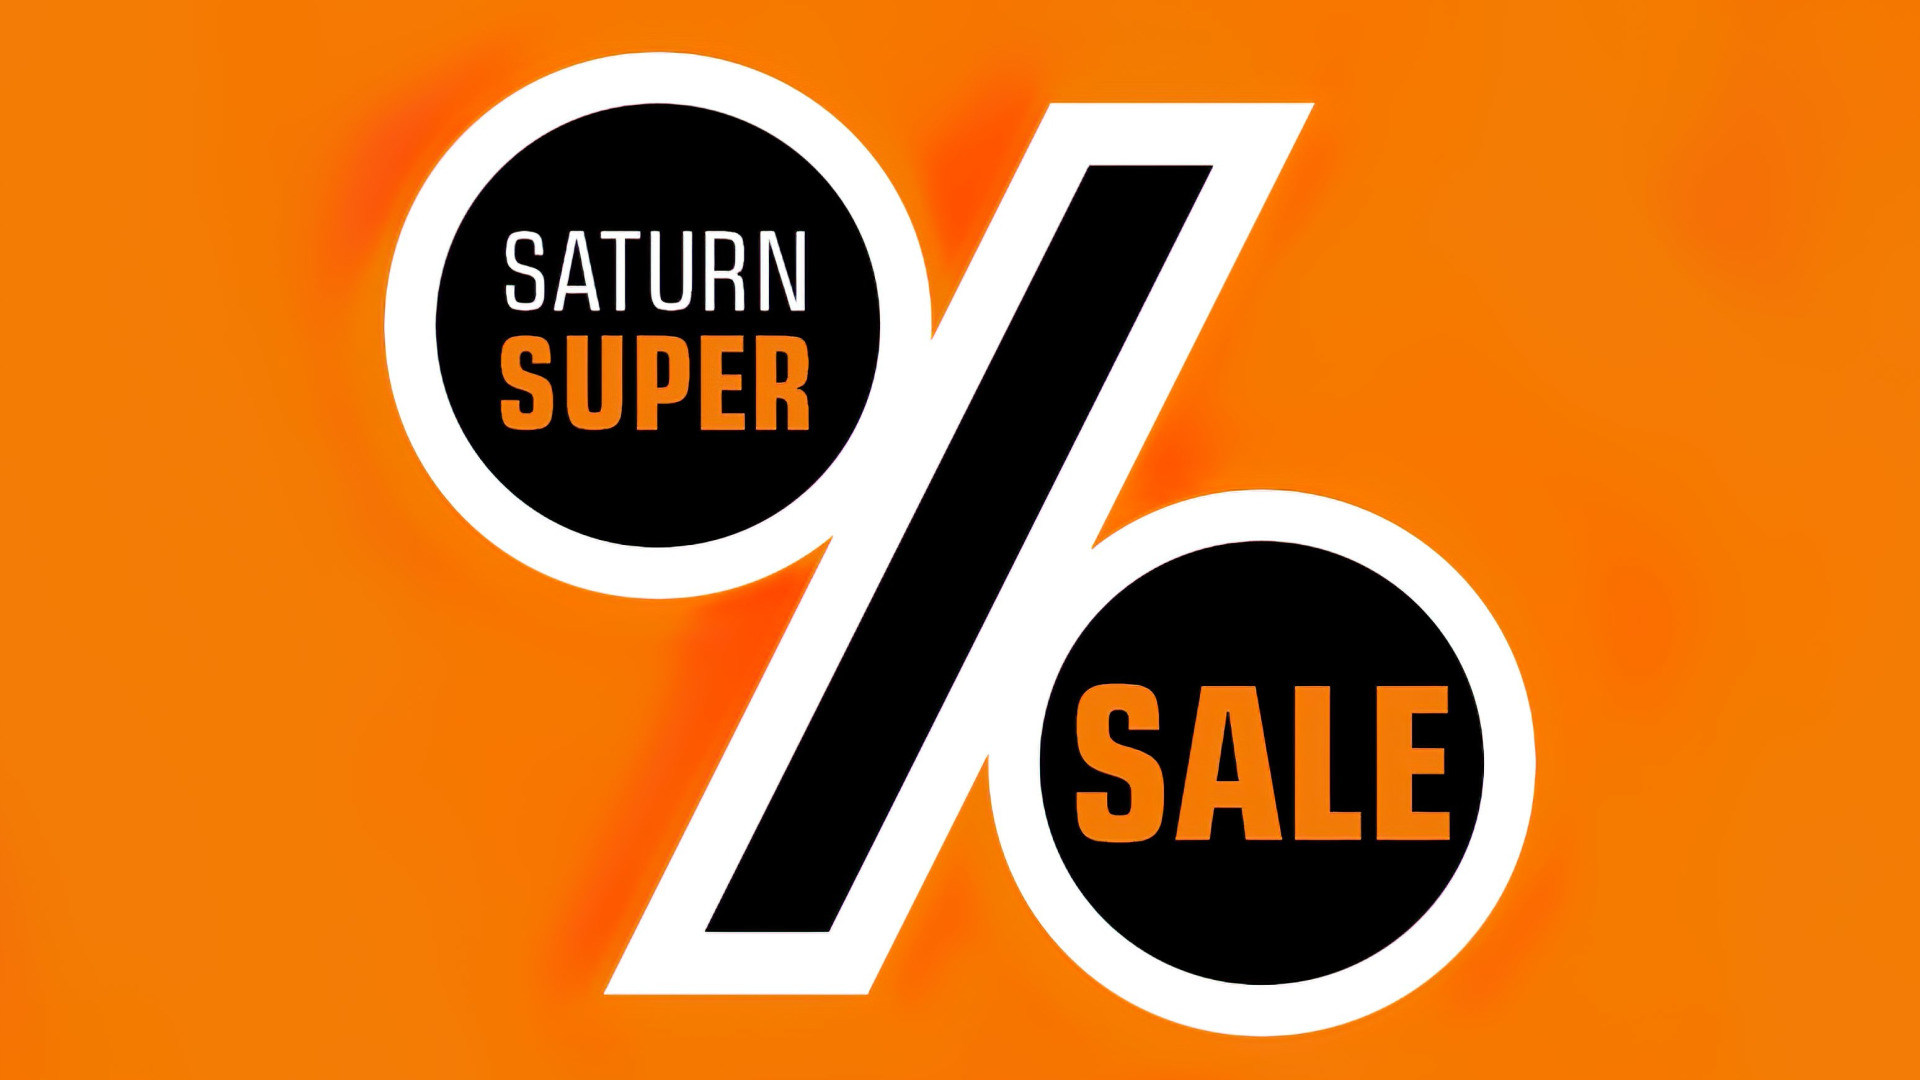 Schnäppchen, Sonderangebote, Rabattaktion, sale, Deals, Saturn, prospekt, Flyer, September 2020, Super Sale